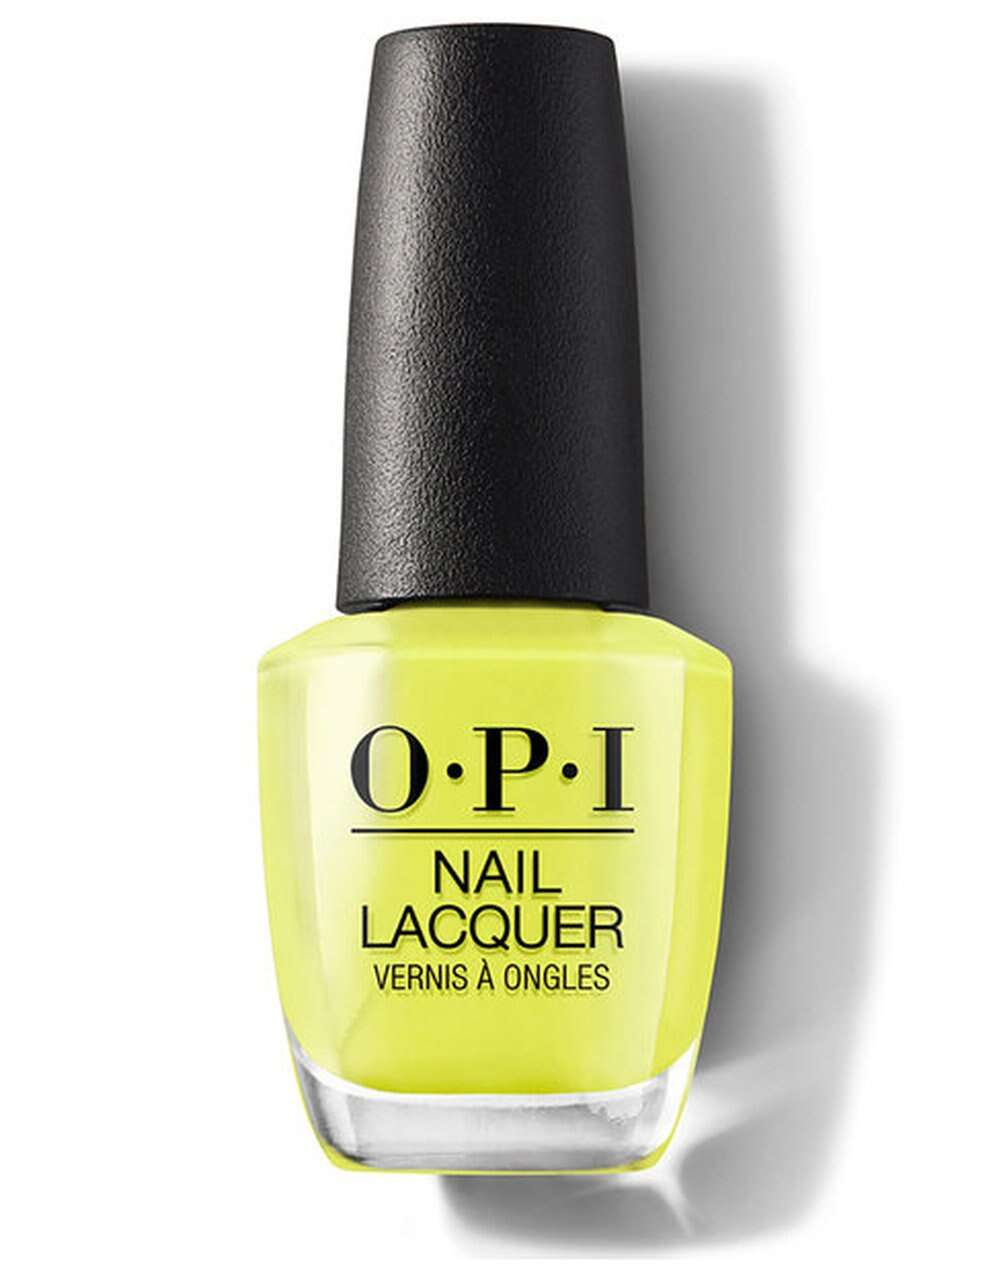 OPI NAIL LACQUER N70 PUMP UP THE VOLUME 15ML